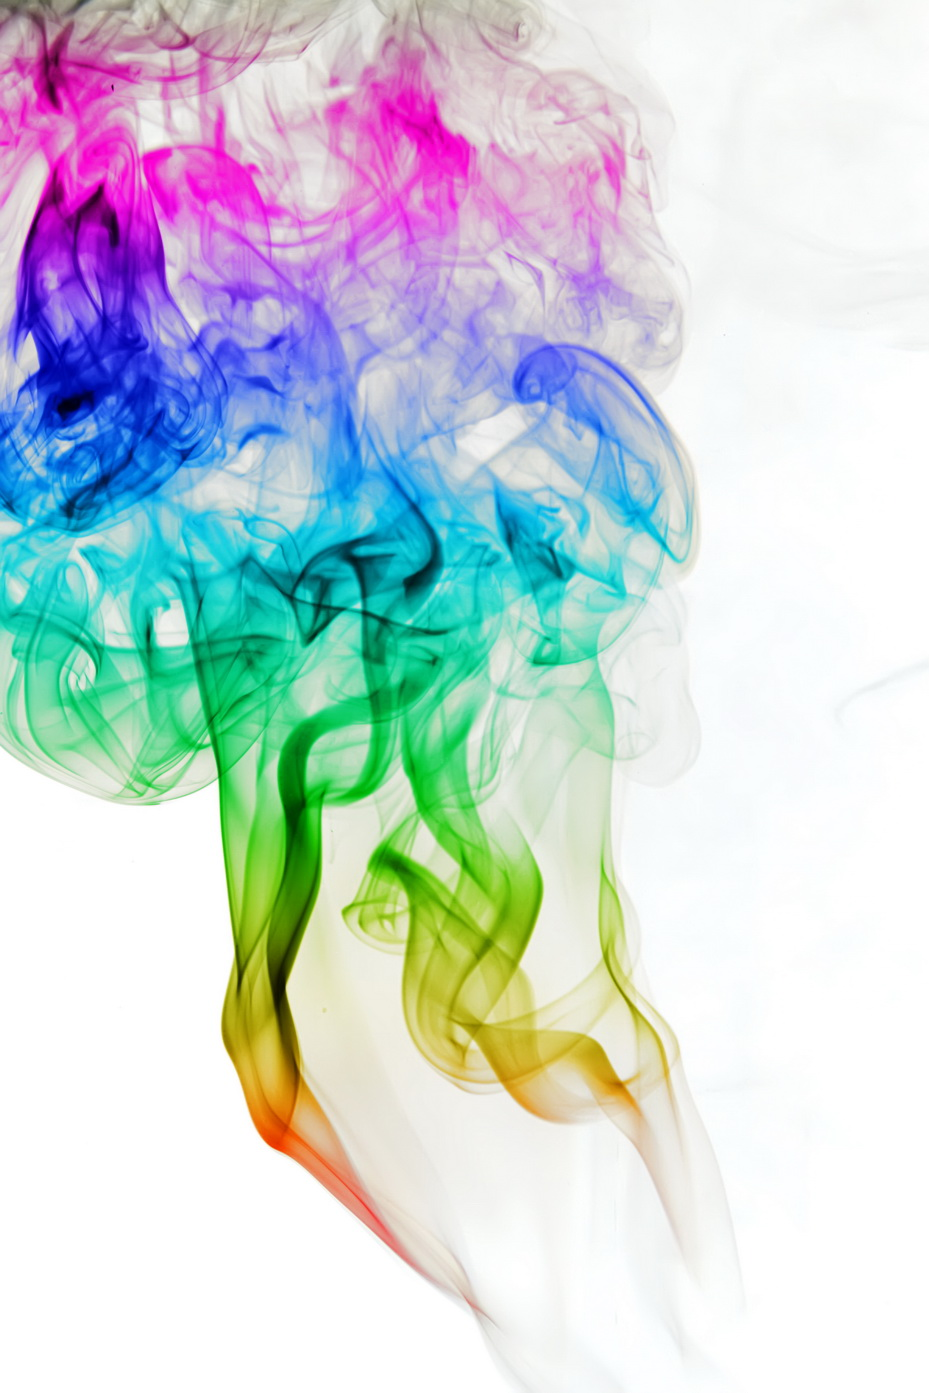 Multicolored Smoke, Abstract, Aroma, Aromatherapy, Color, HQ Photo